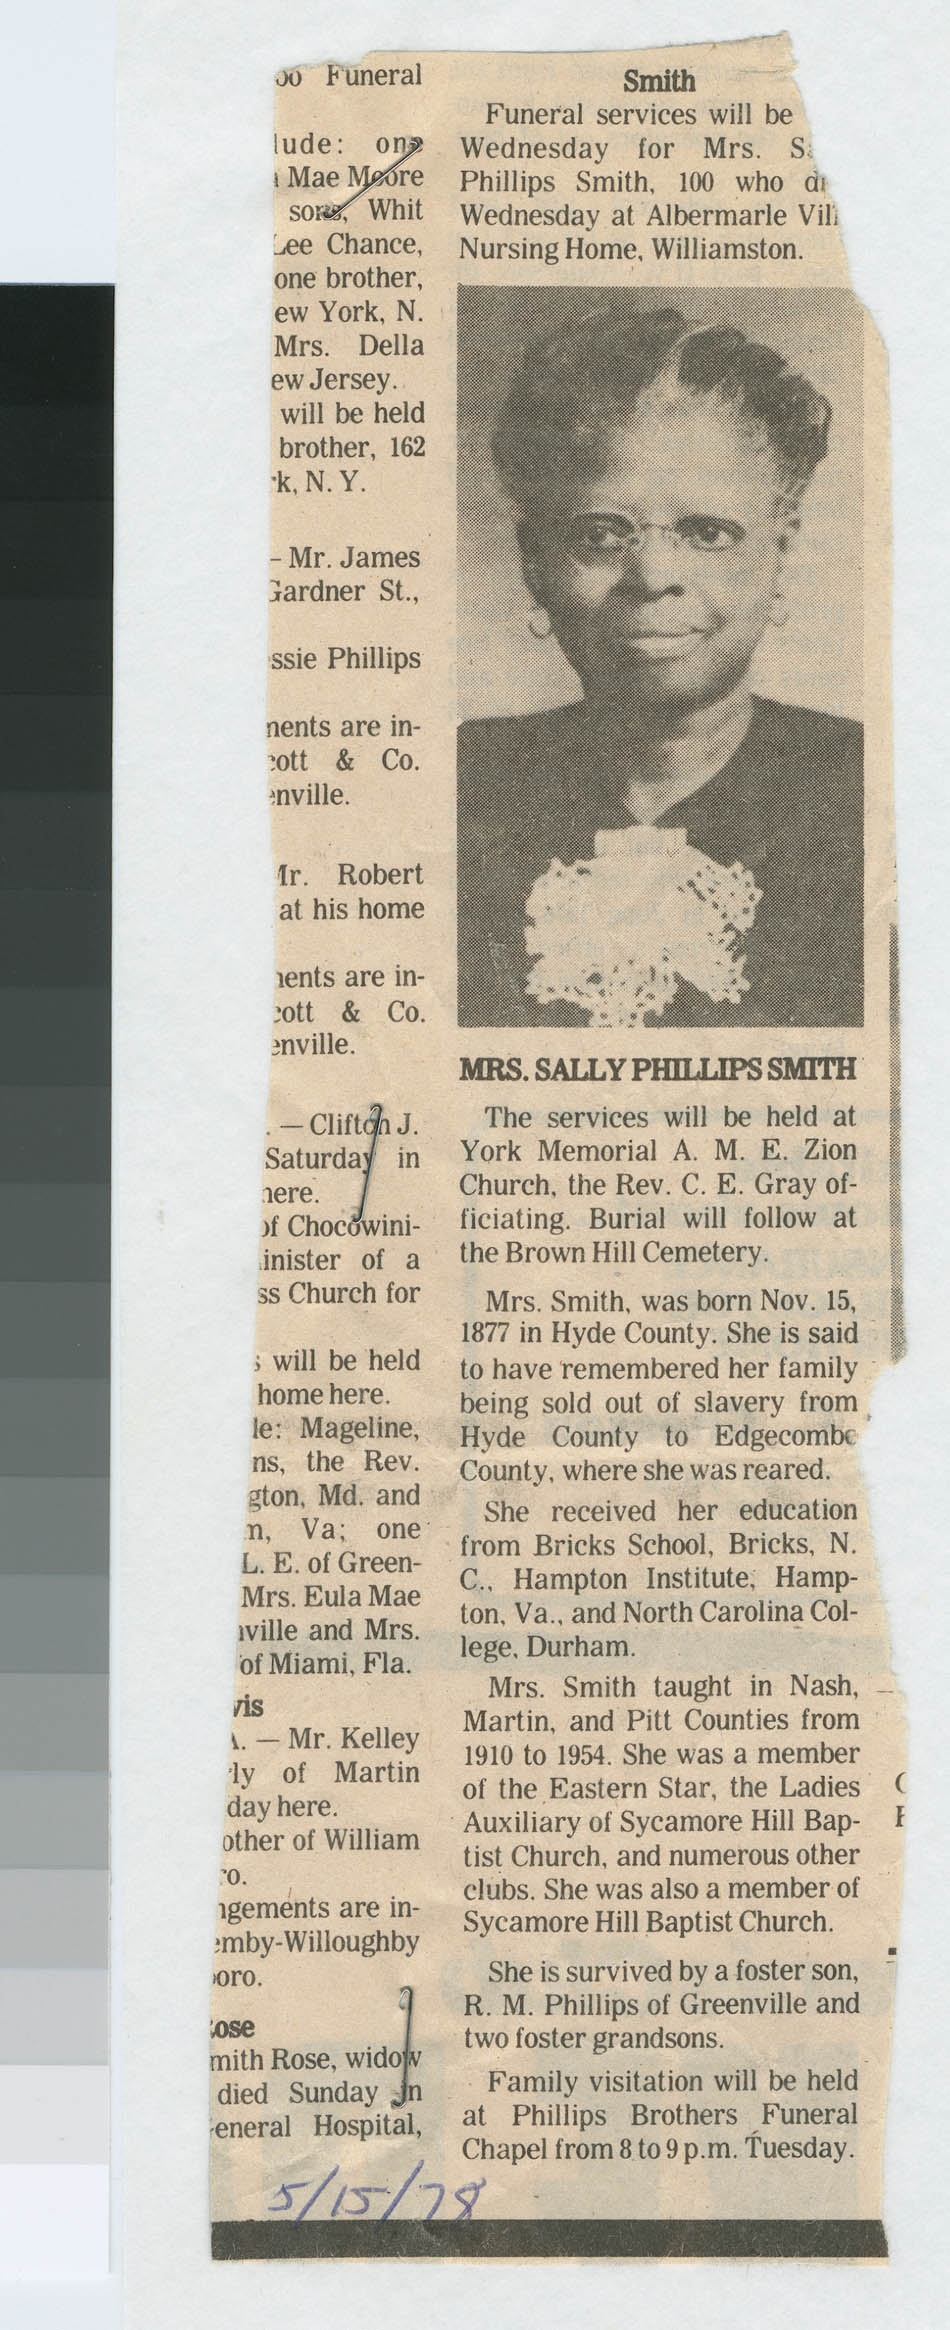 Obituary for Mrs. Sally Phillips Smith